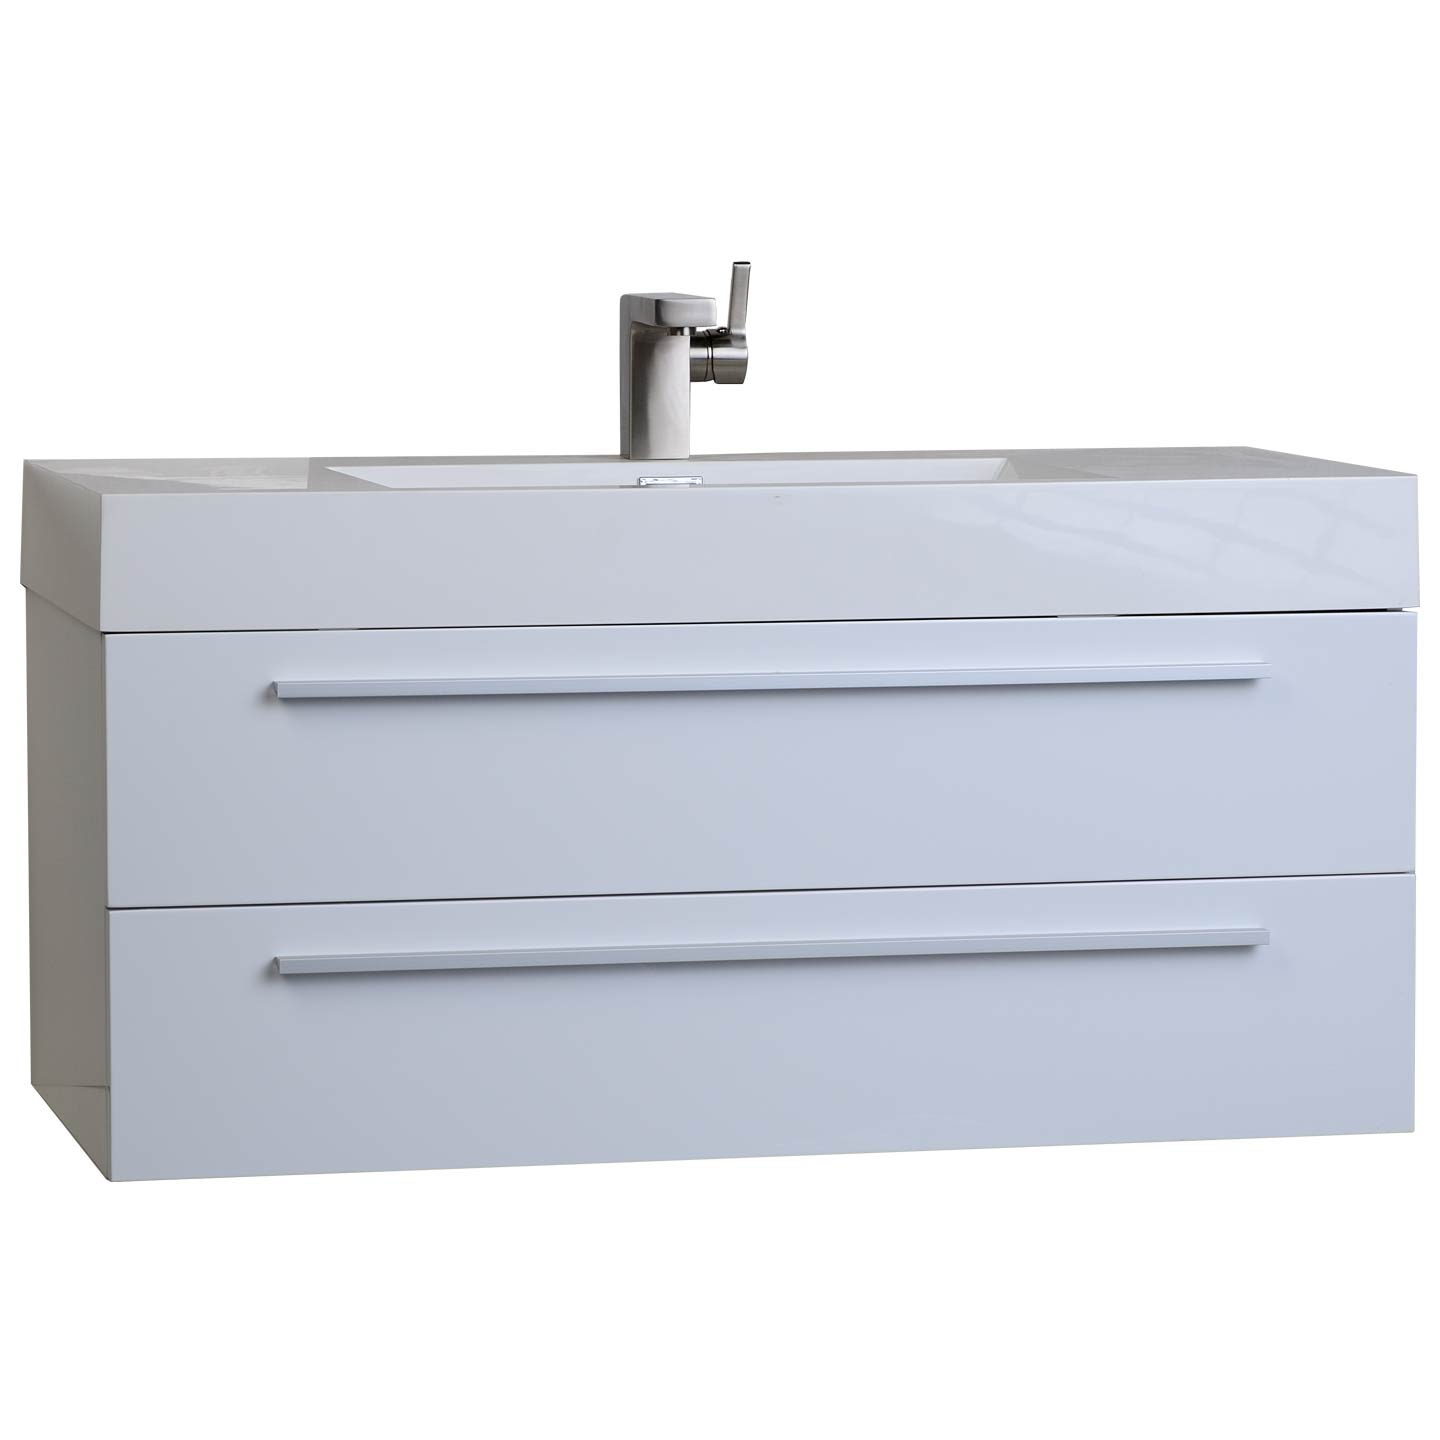 Buy In Wall Mount Contemporary Bathroom Vanity High Gloss White TN T10